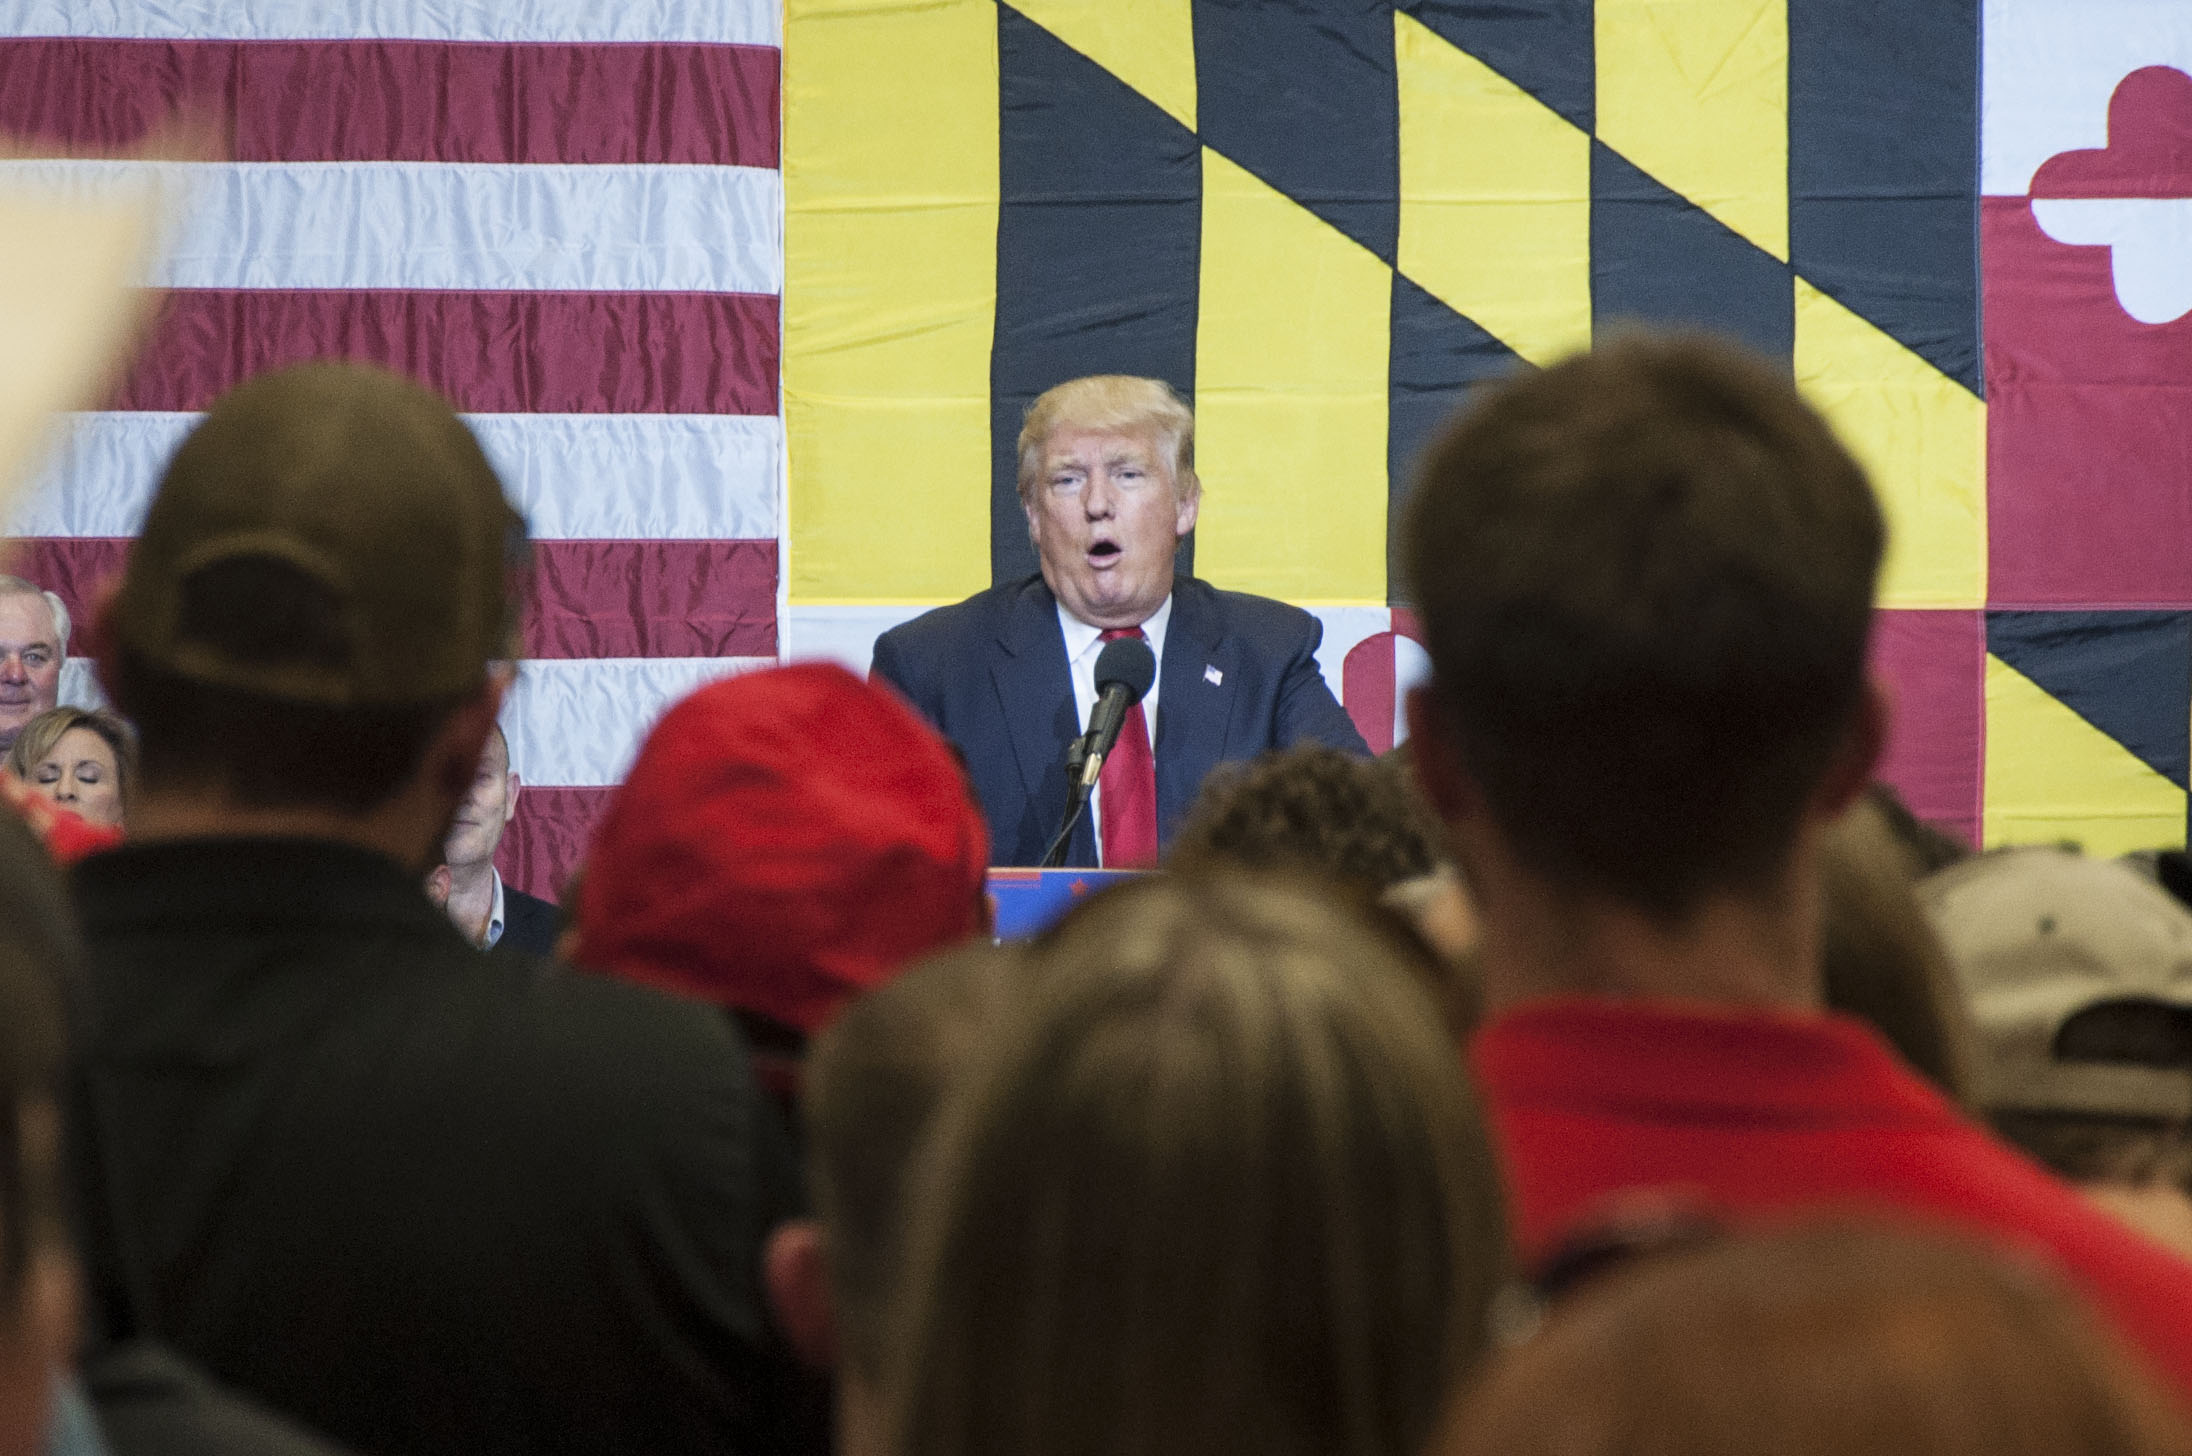 Donald Trump speaks at a rally at Stephen Decatur High School in Berlin, Md. His inaugural concert lineup falls short of Obama's in album sales and amount of artists. Photo by: Rebecca Rainey